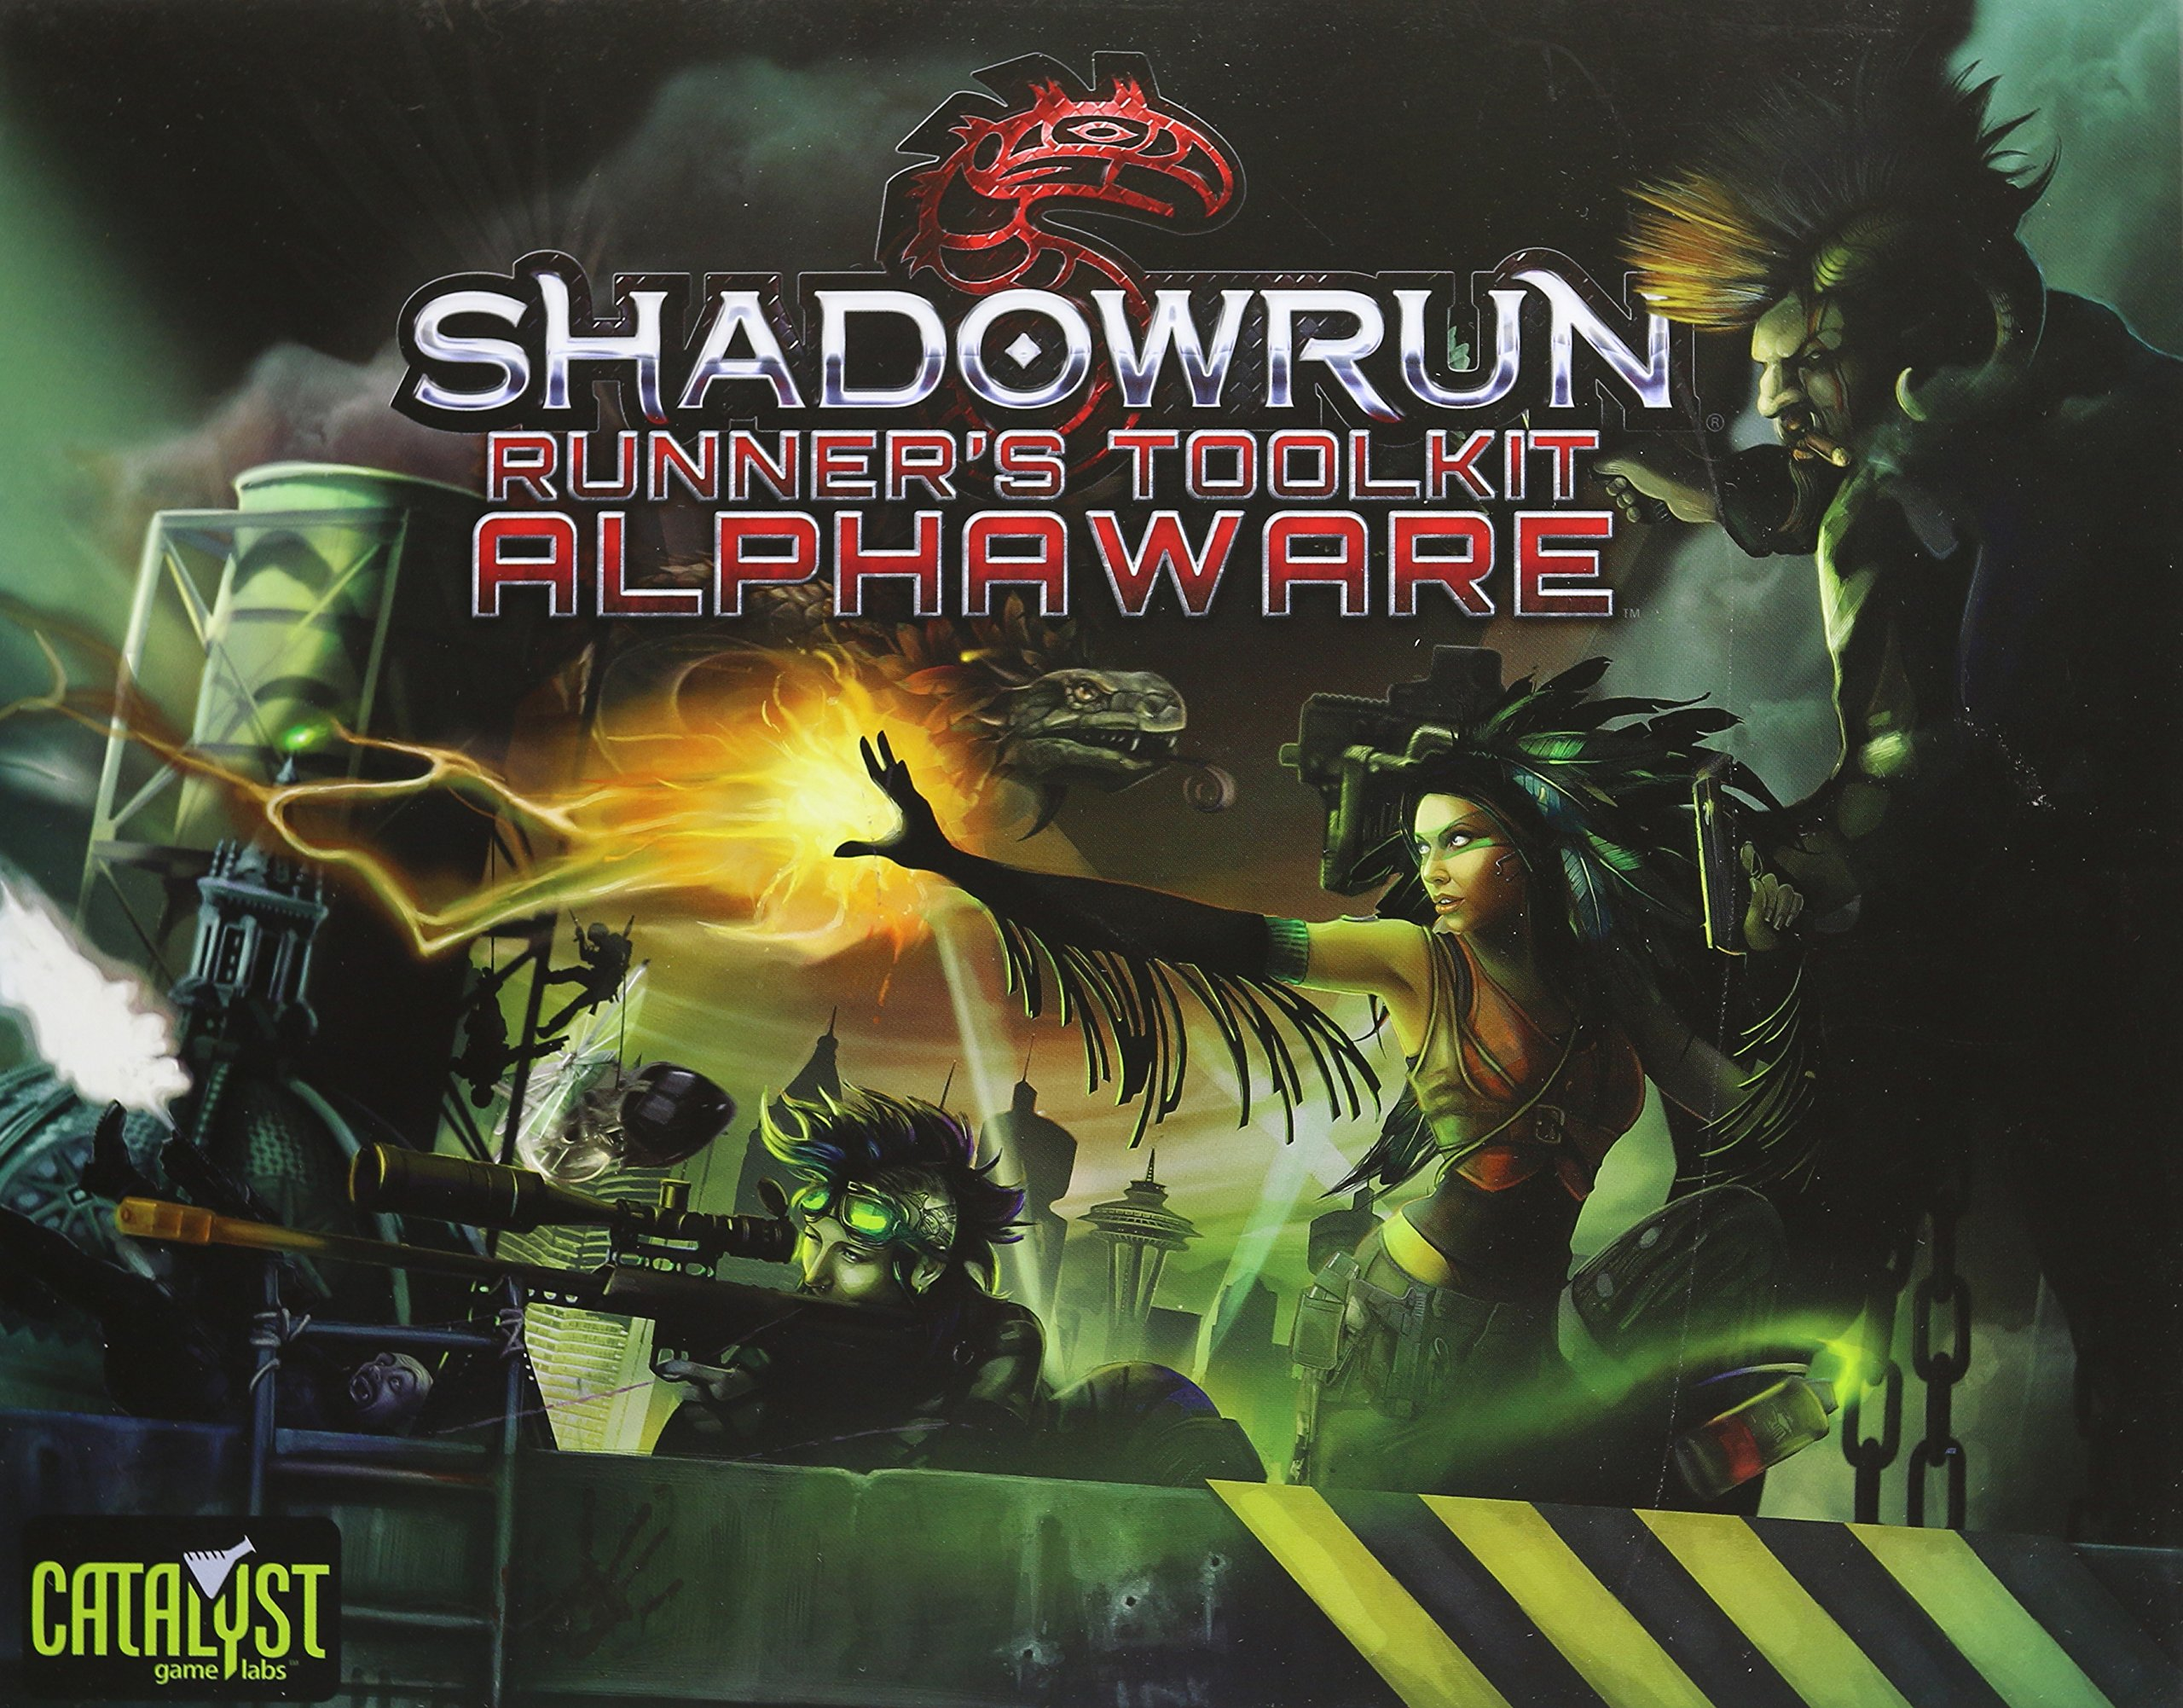 Shadowrun Runners Toolkit Alphaware: Catalyst Game Labs ...